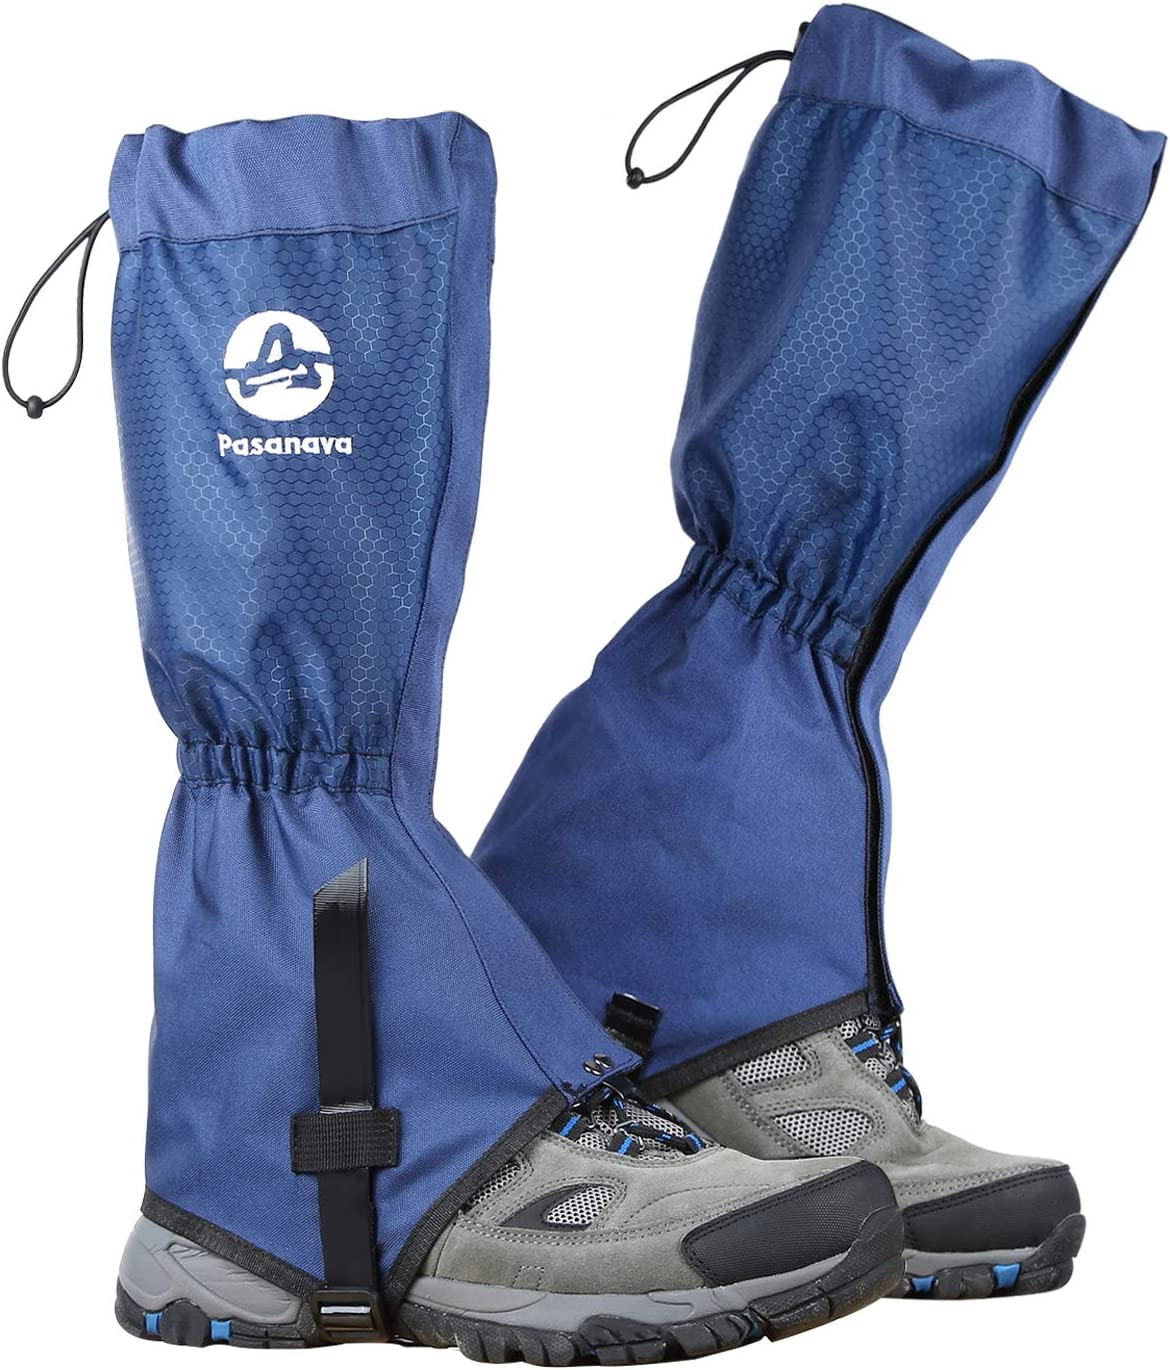 Pasanava Leg Gaiters Waterproof and Adjustable Walking Snow Gaiters with TPU Foot Strap for Hiking,Hunting,Backpacking and Outdoor for Men and Women